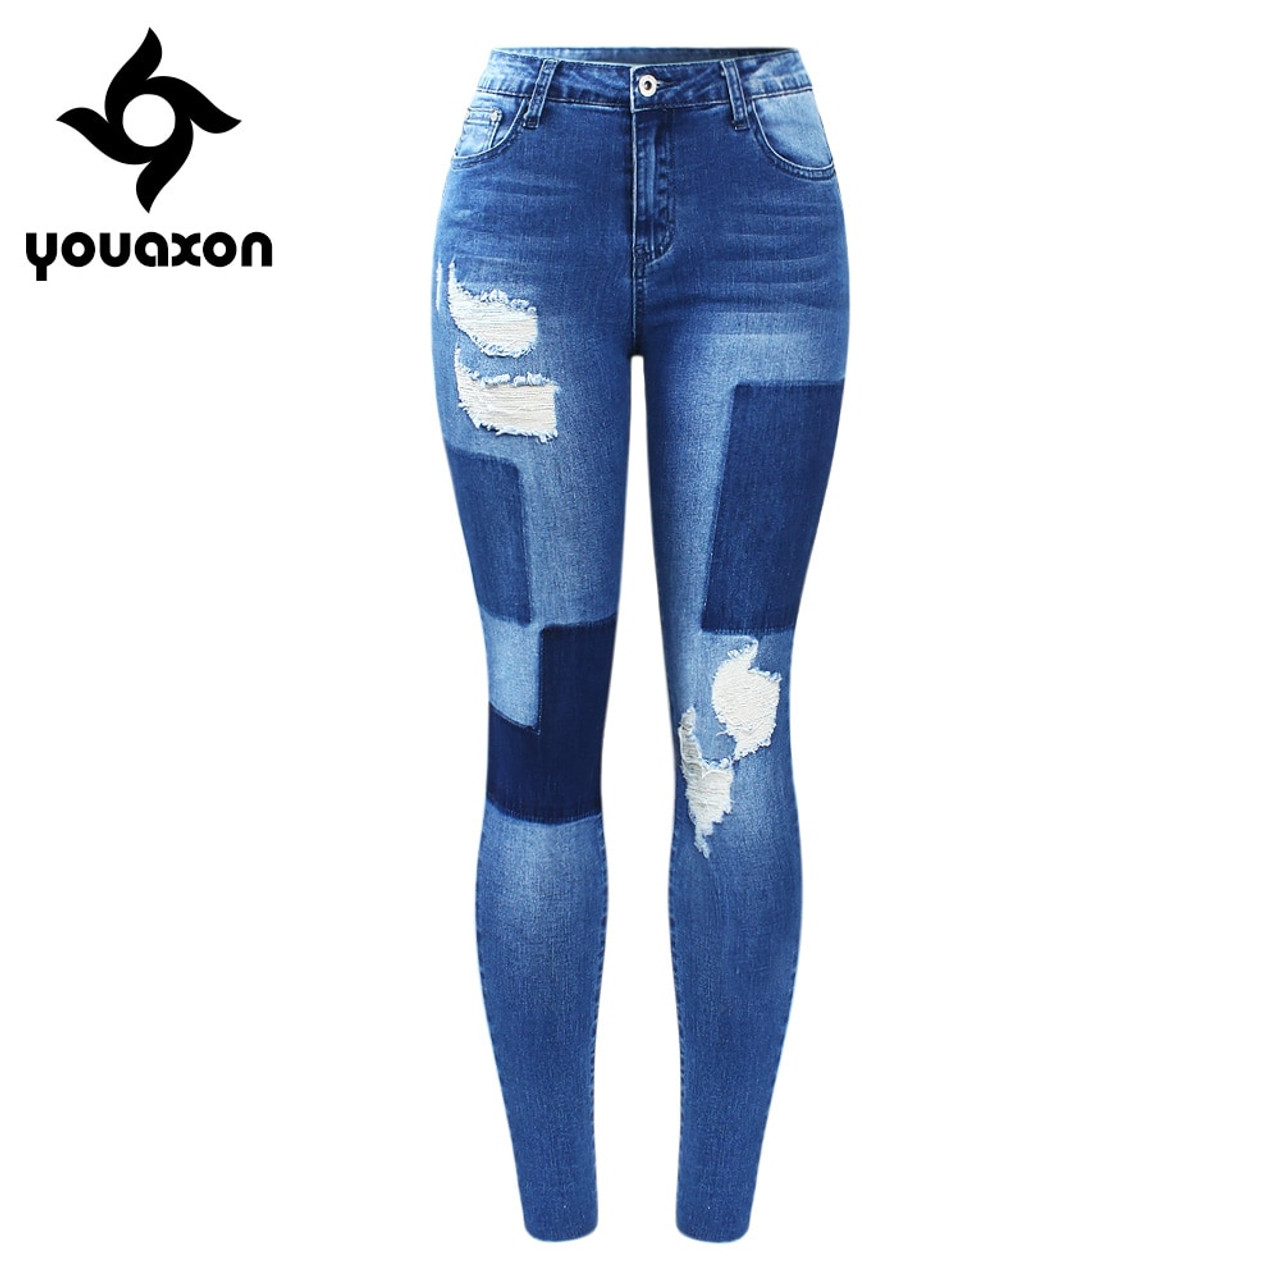 036236d0ee7 2172 Youaxon New Stretchy Fake Patches Jeans Woman Blue Ripped Denim Pants  Trousers For Women Pencil ...